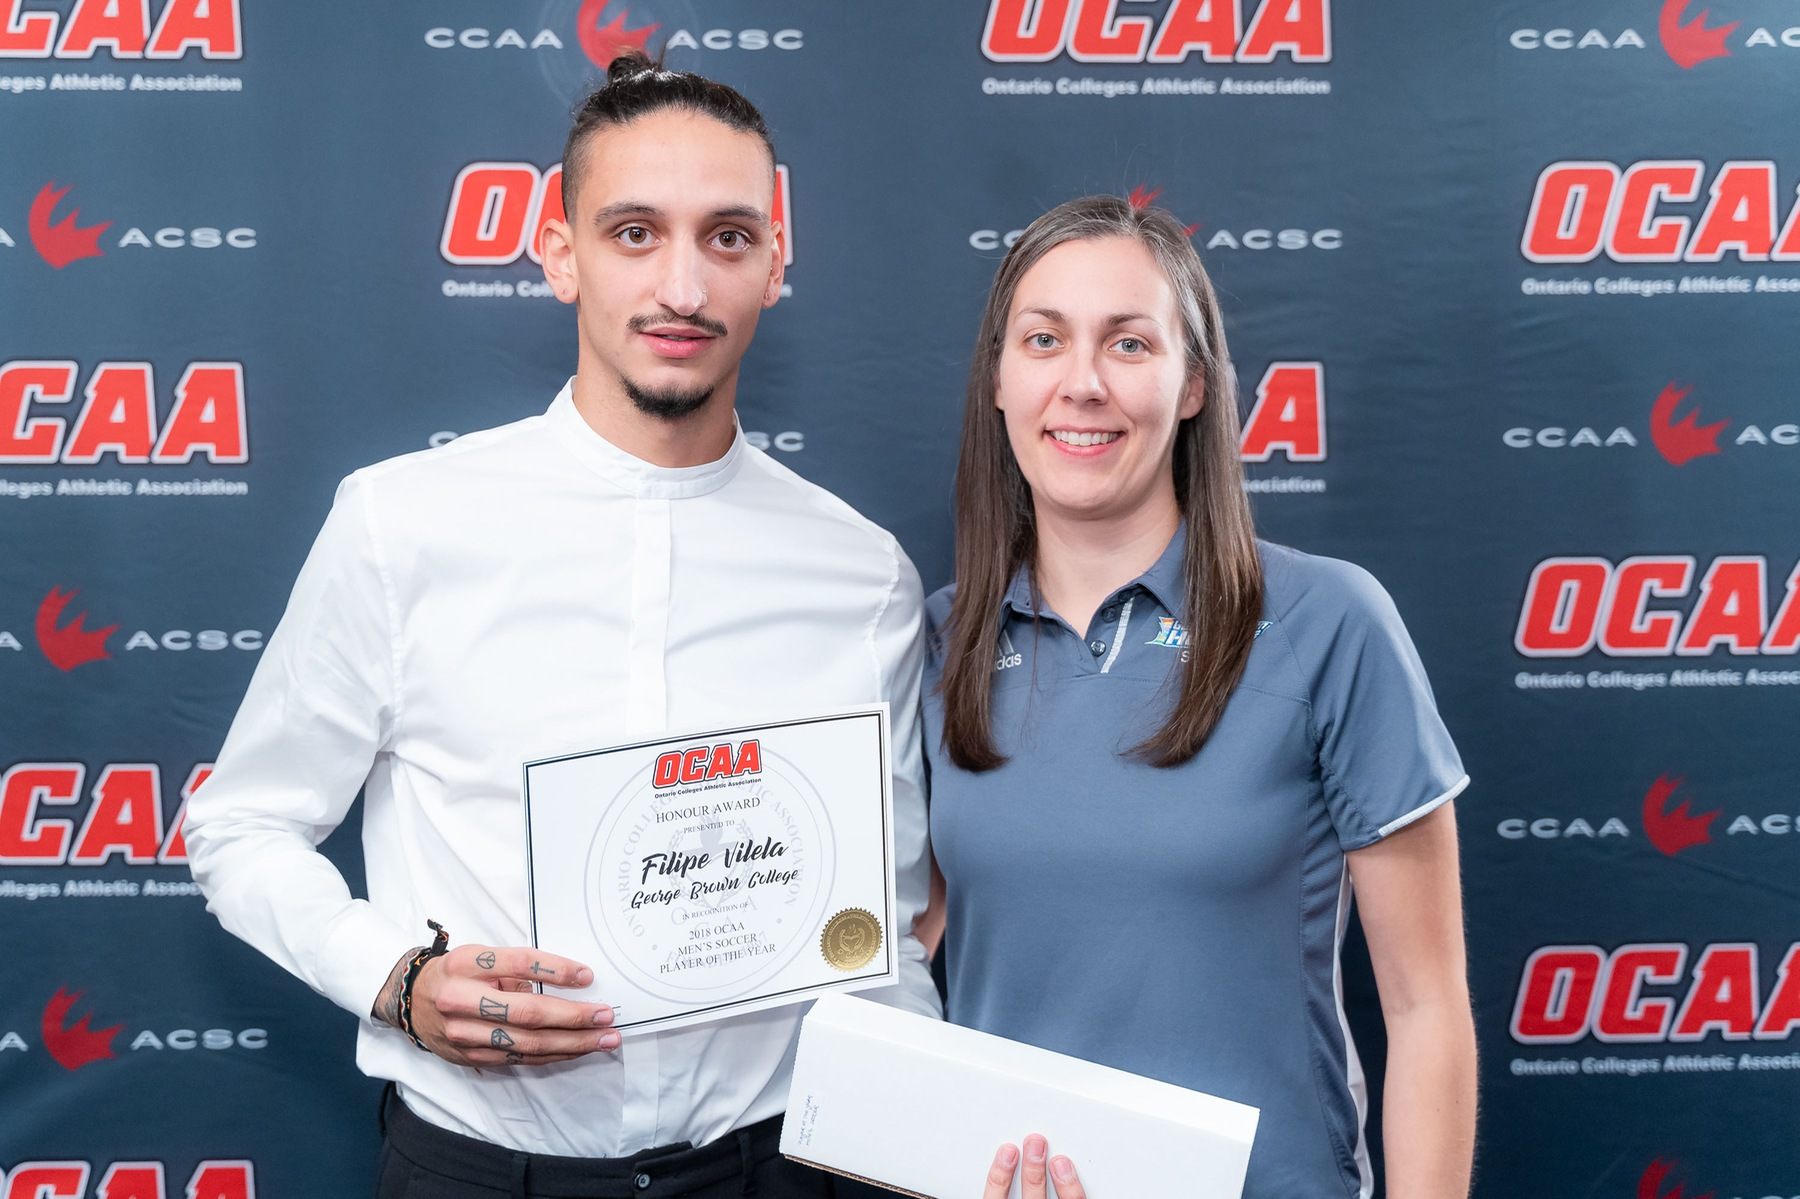 HUSKIES FILIPE VILELA NAMED OCAA PLAYER OF THE YEAR TO HIGHLIGHT AWARDS BANQUET